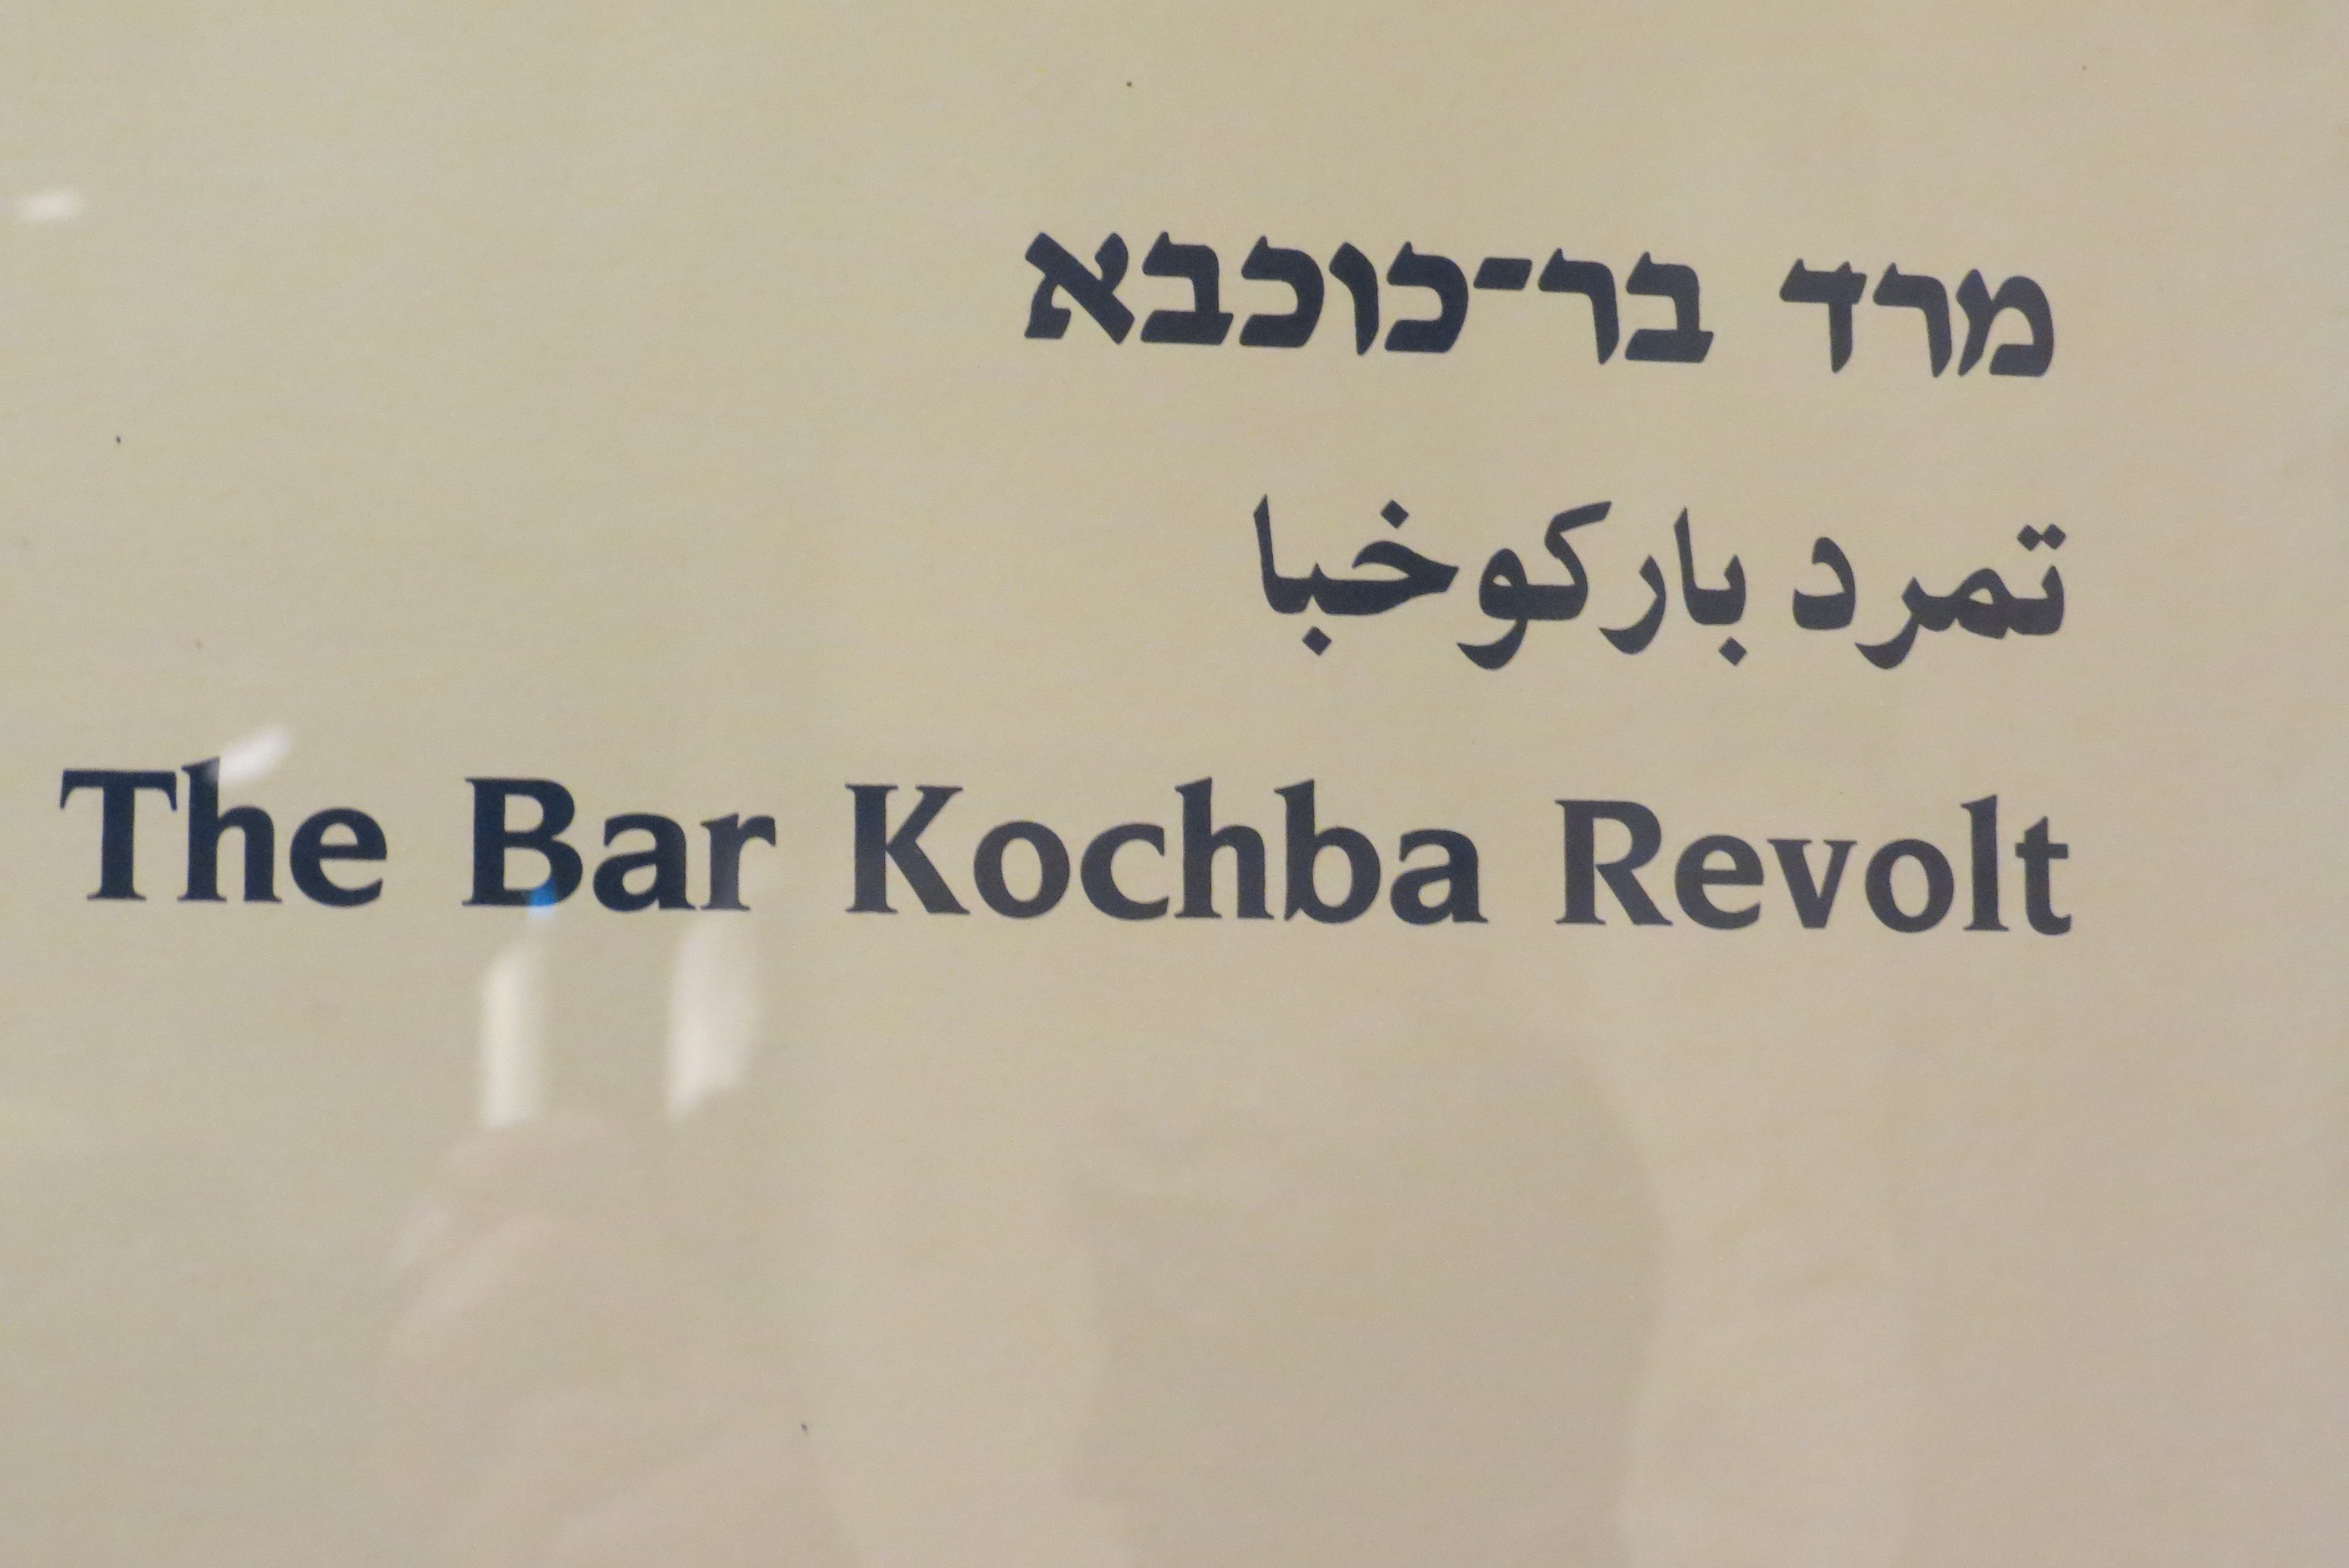 Bar Kochba Revolt